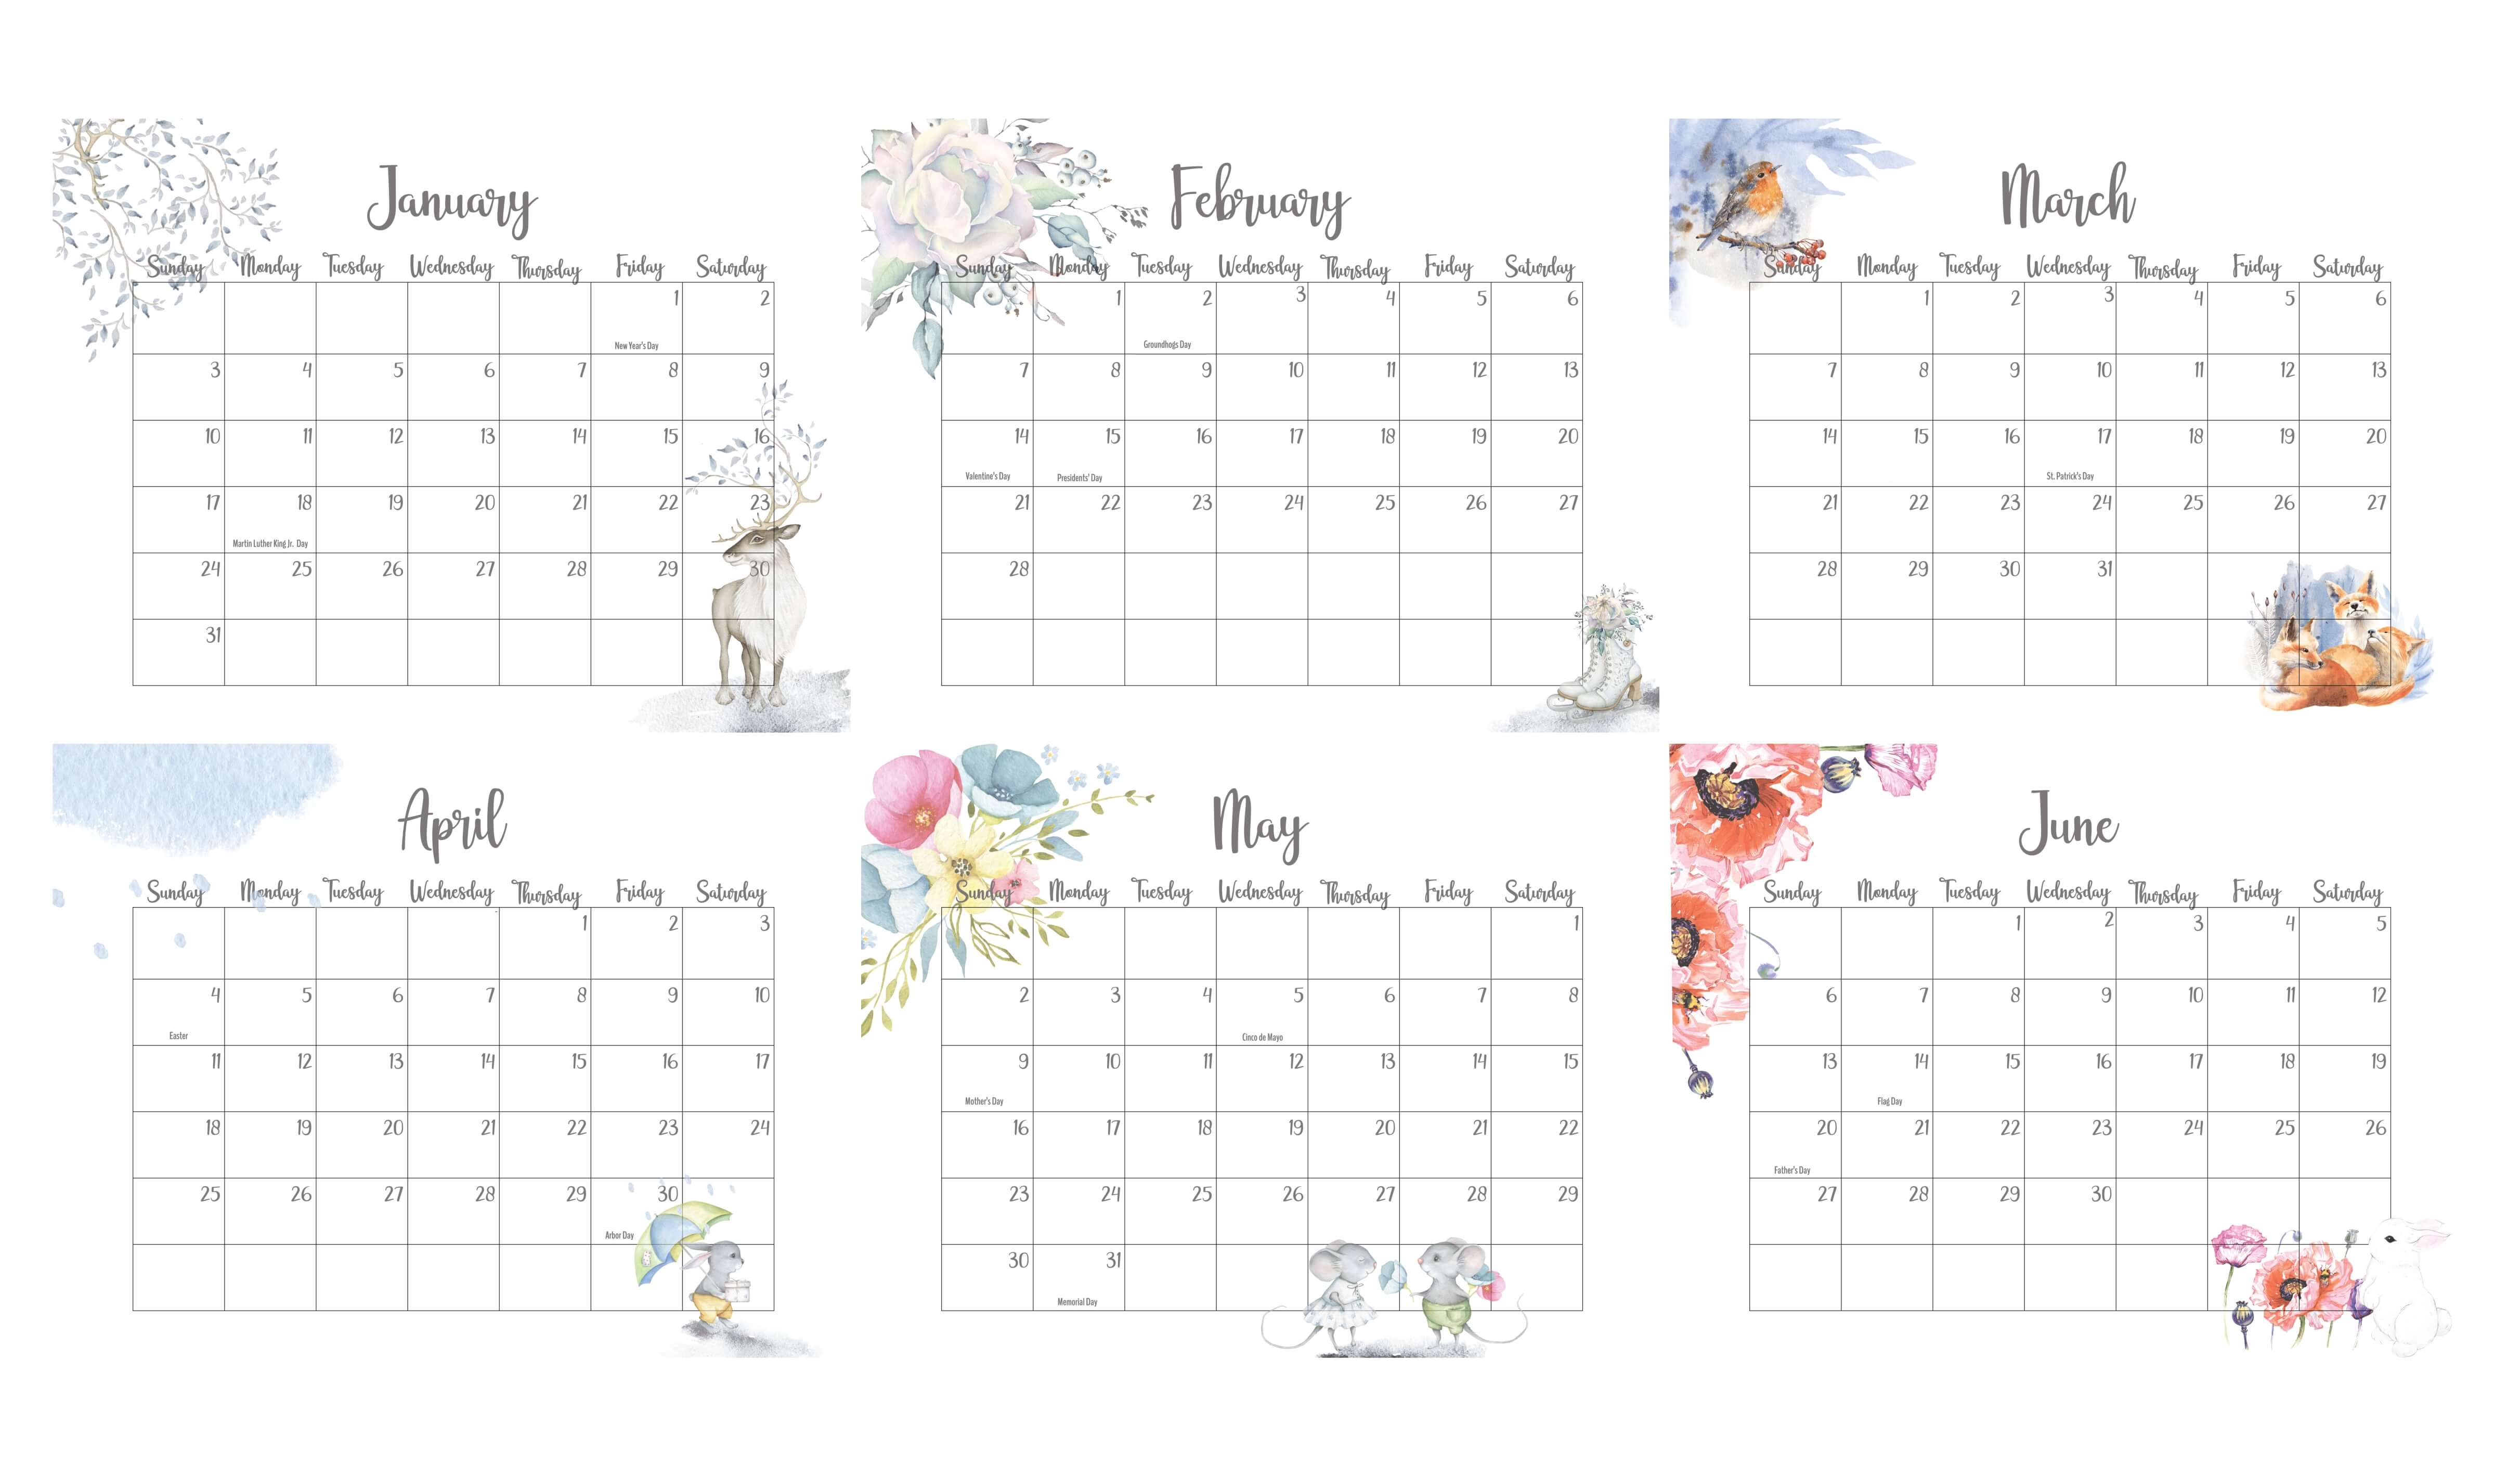 January To June 2021 Calendar With Holidays